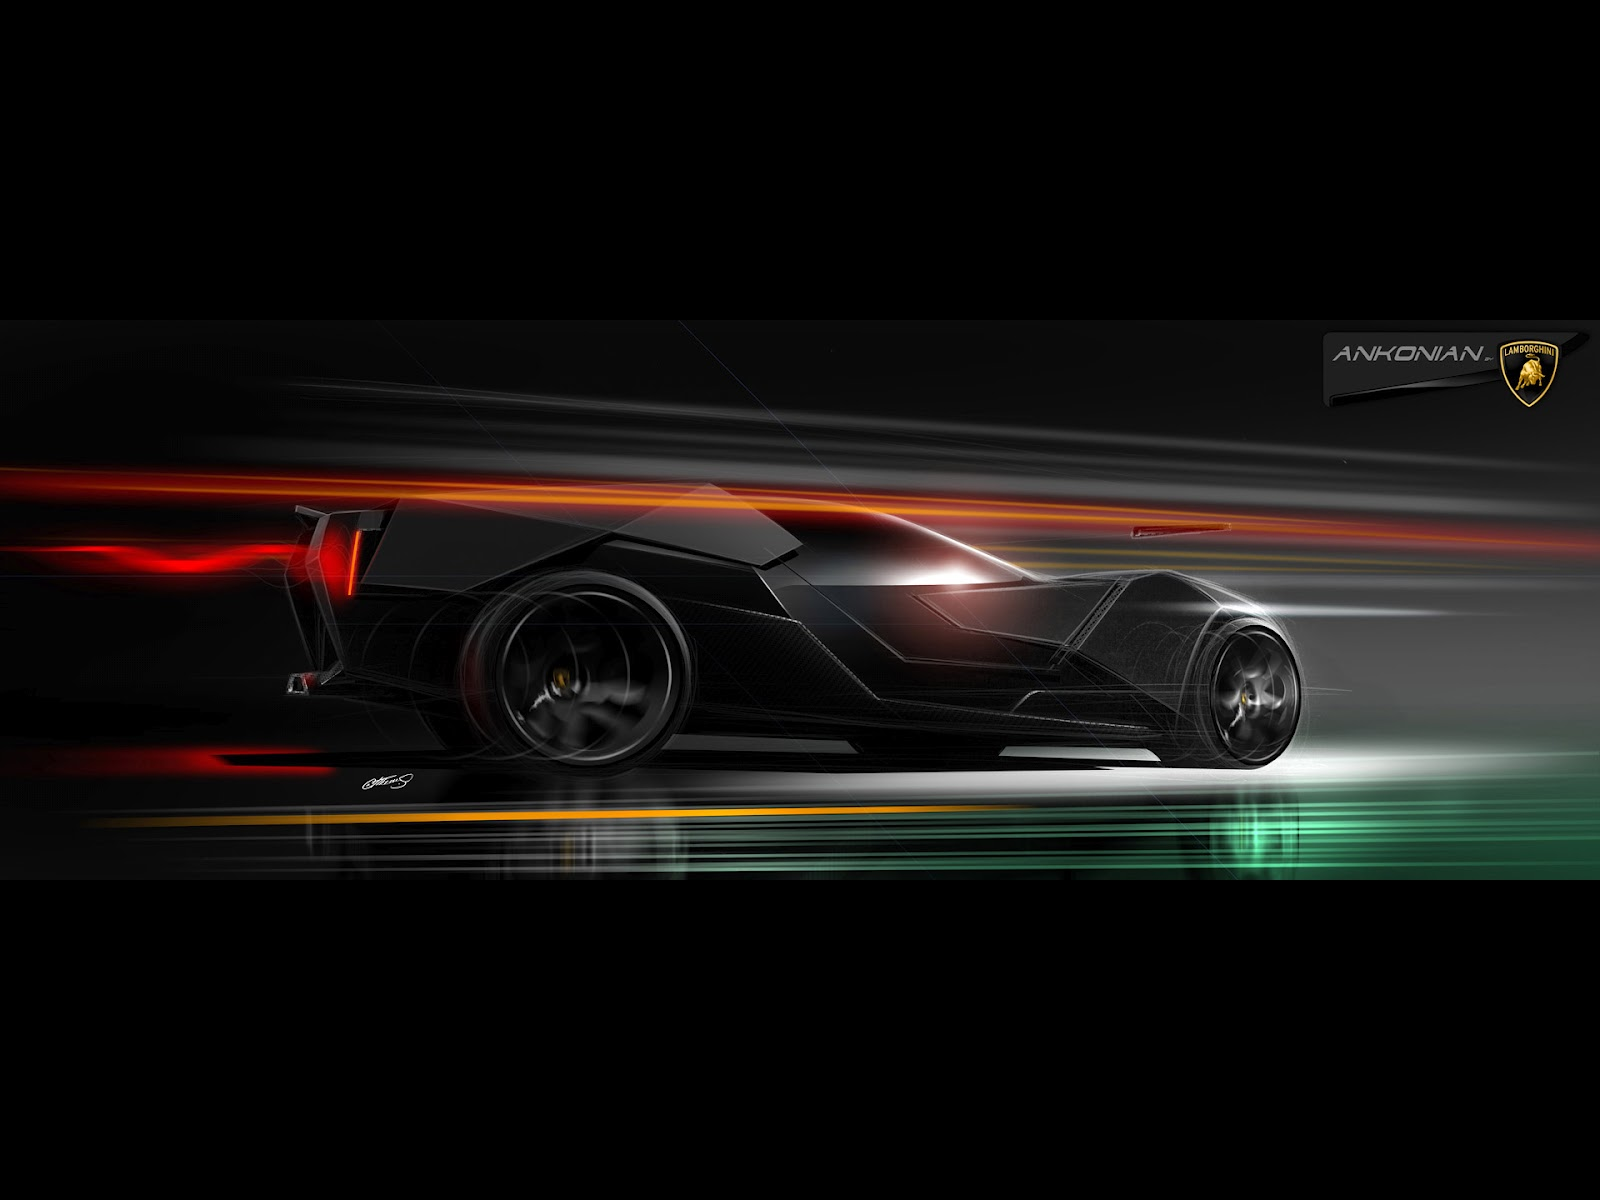 Lamborghini Ankonian Concept Car | HD Wallpapers (High Definition ...